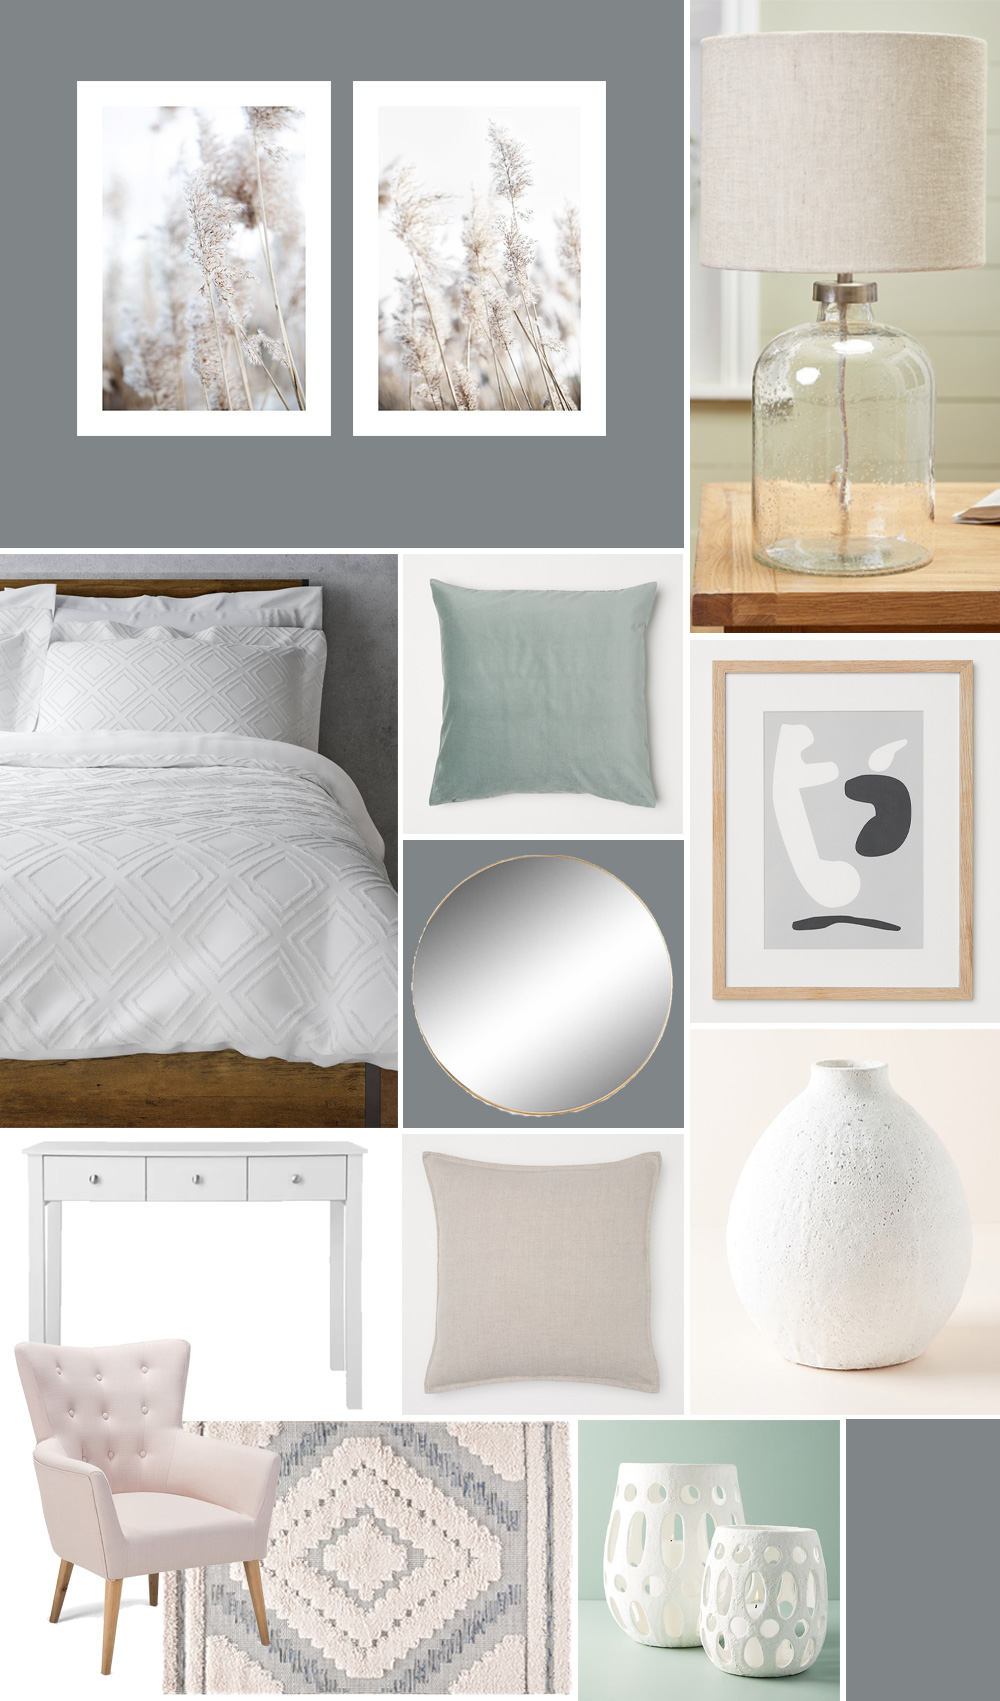 Rental bedroom makeover plans and moodboard